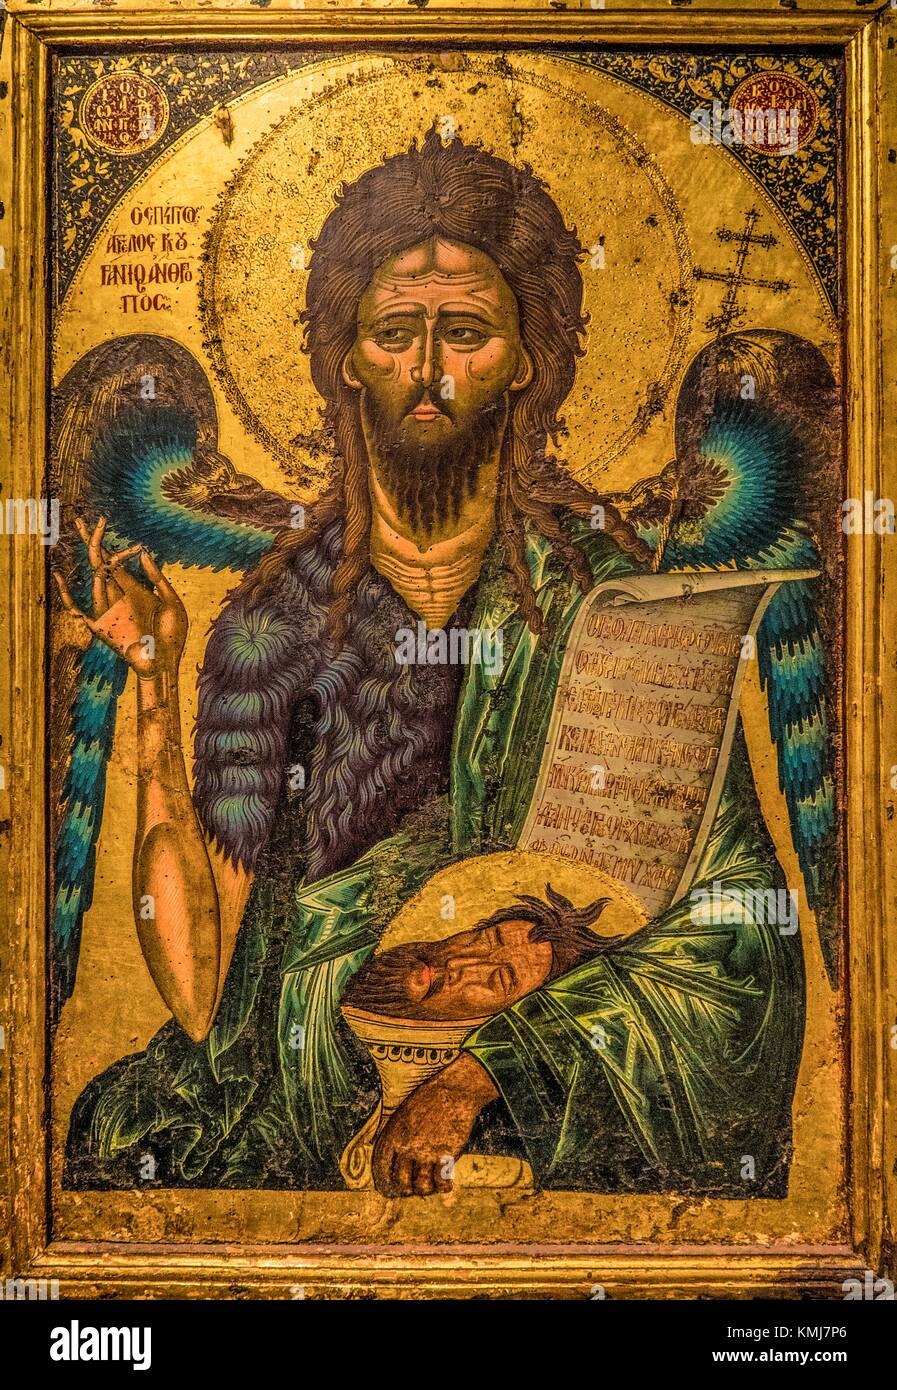 Albania, Berat- Onufri National Museum: Saint John the Baptist by Onufri, XVIc., the most important iconacaste painter - Stock Image